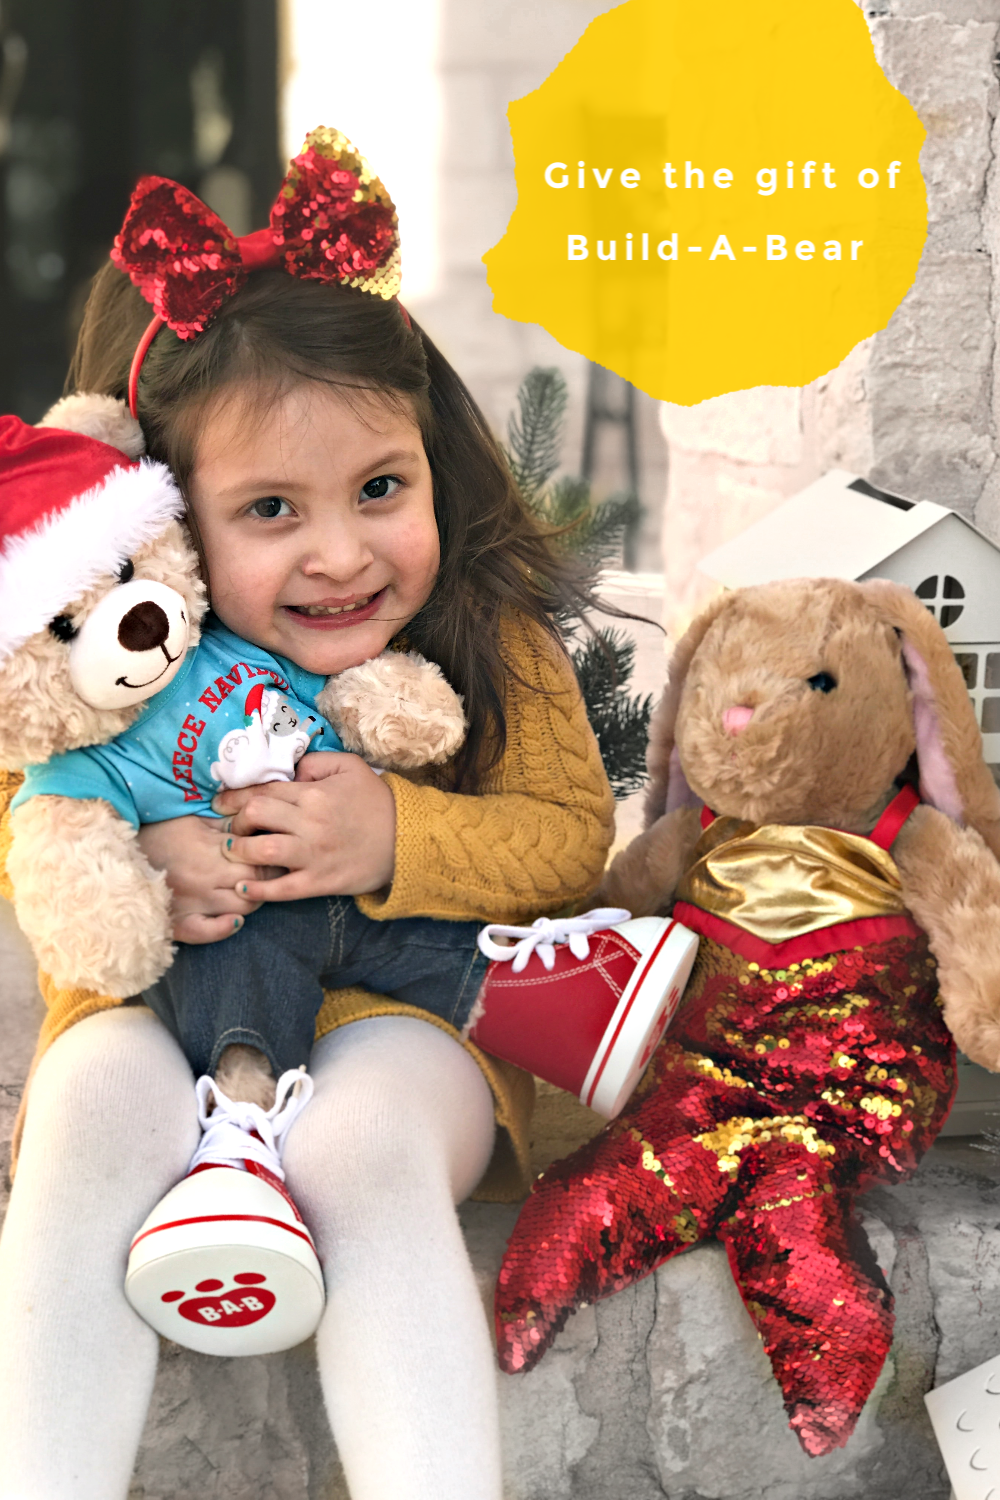 Give the gift of a Build-A-Bear